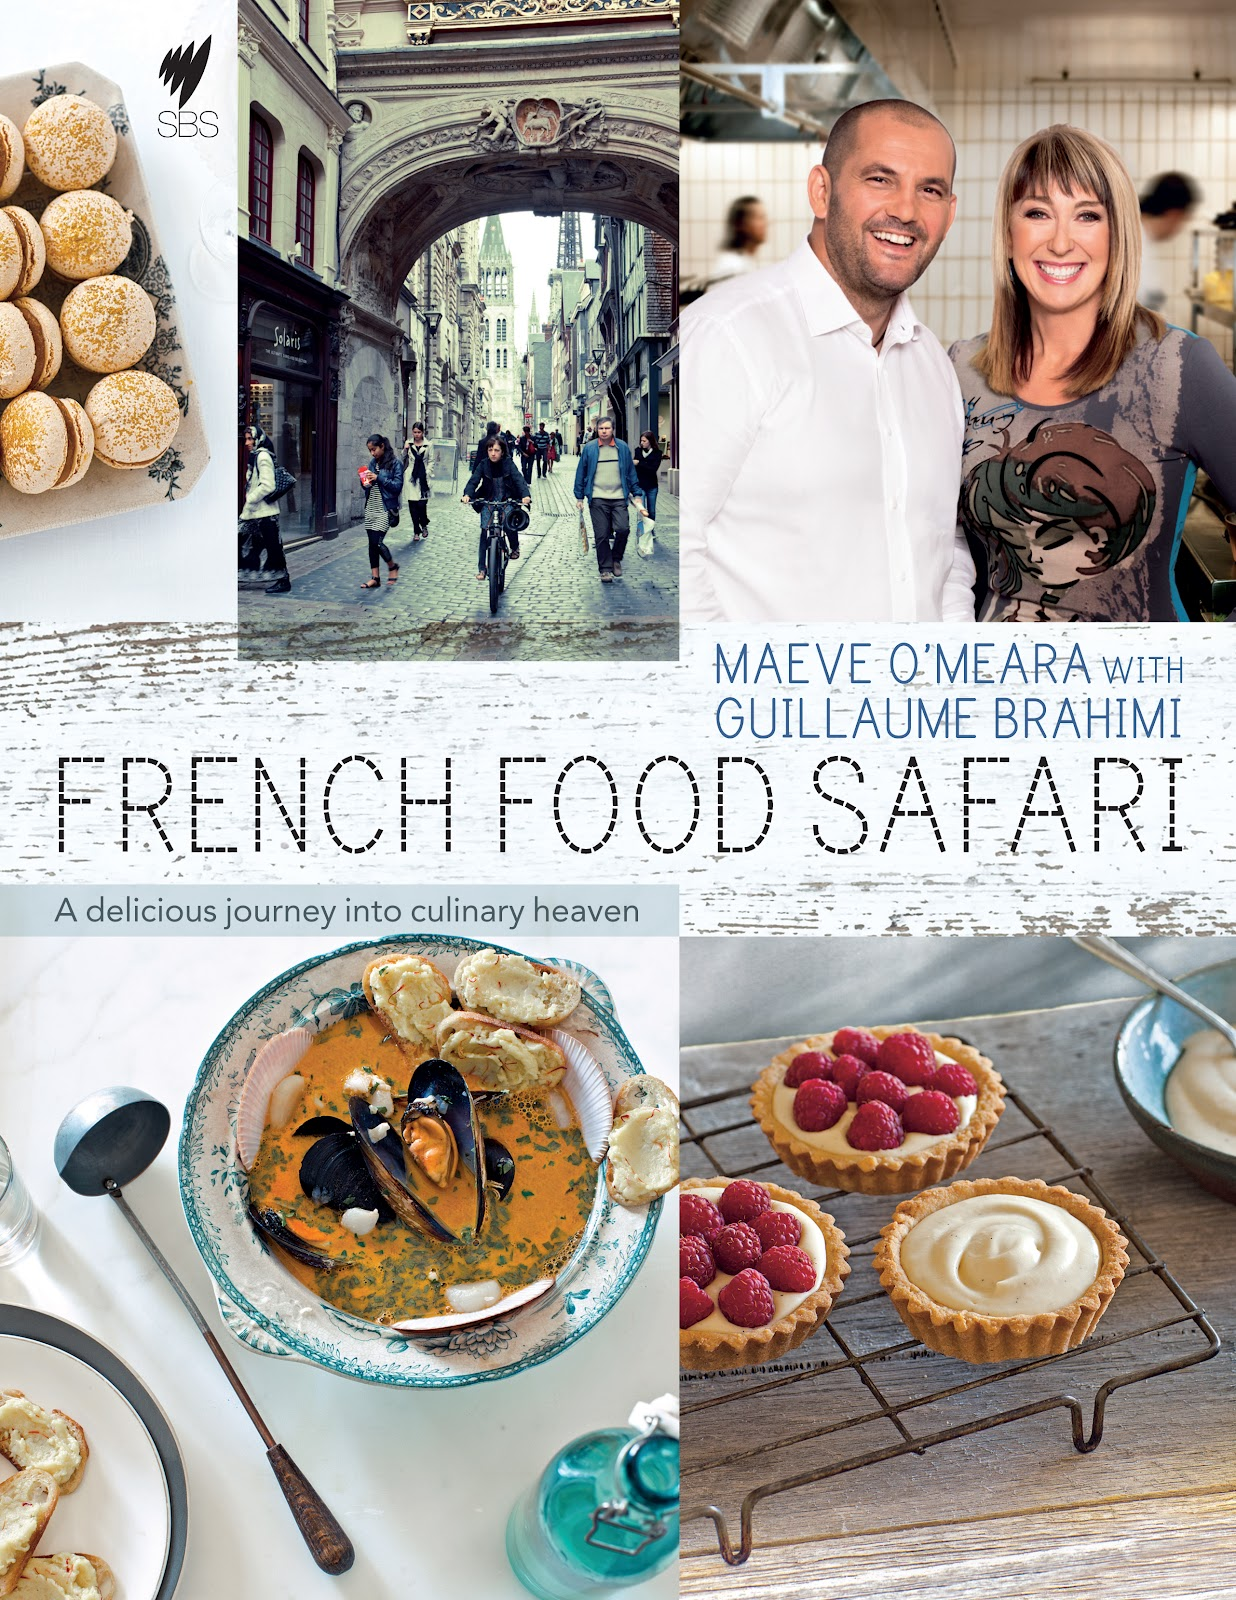 Beatties book blog unofficial homepage of the new zealand book french food safari by maeve omeara with guillaume brahimi hardie grant book forumfinder Images